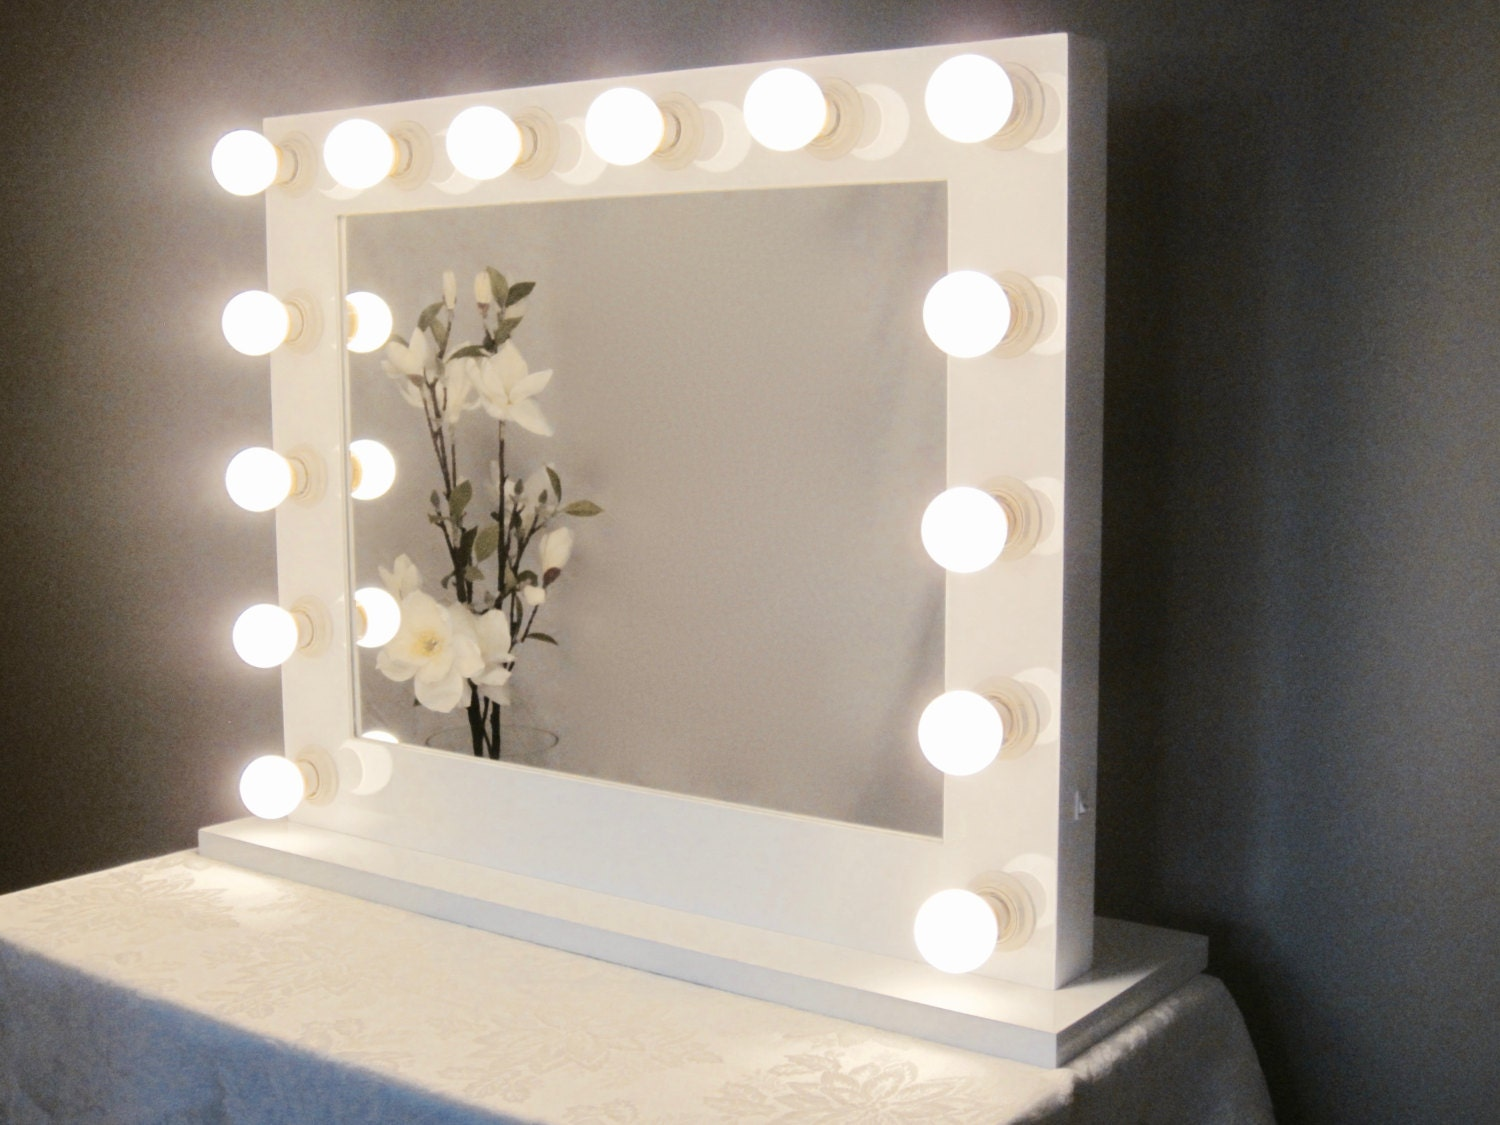 Grand Hollywood Lighted Vanity Mirror w/ LED Bulbs by ImpactVanity